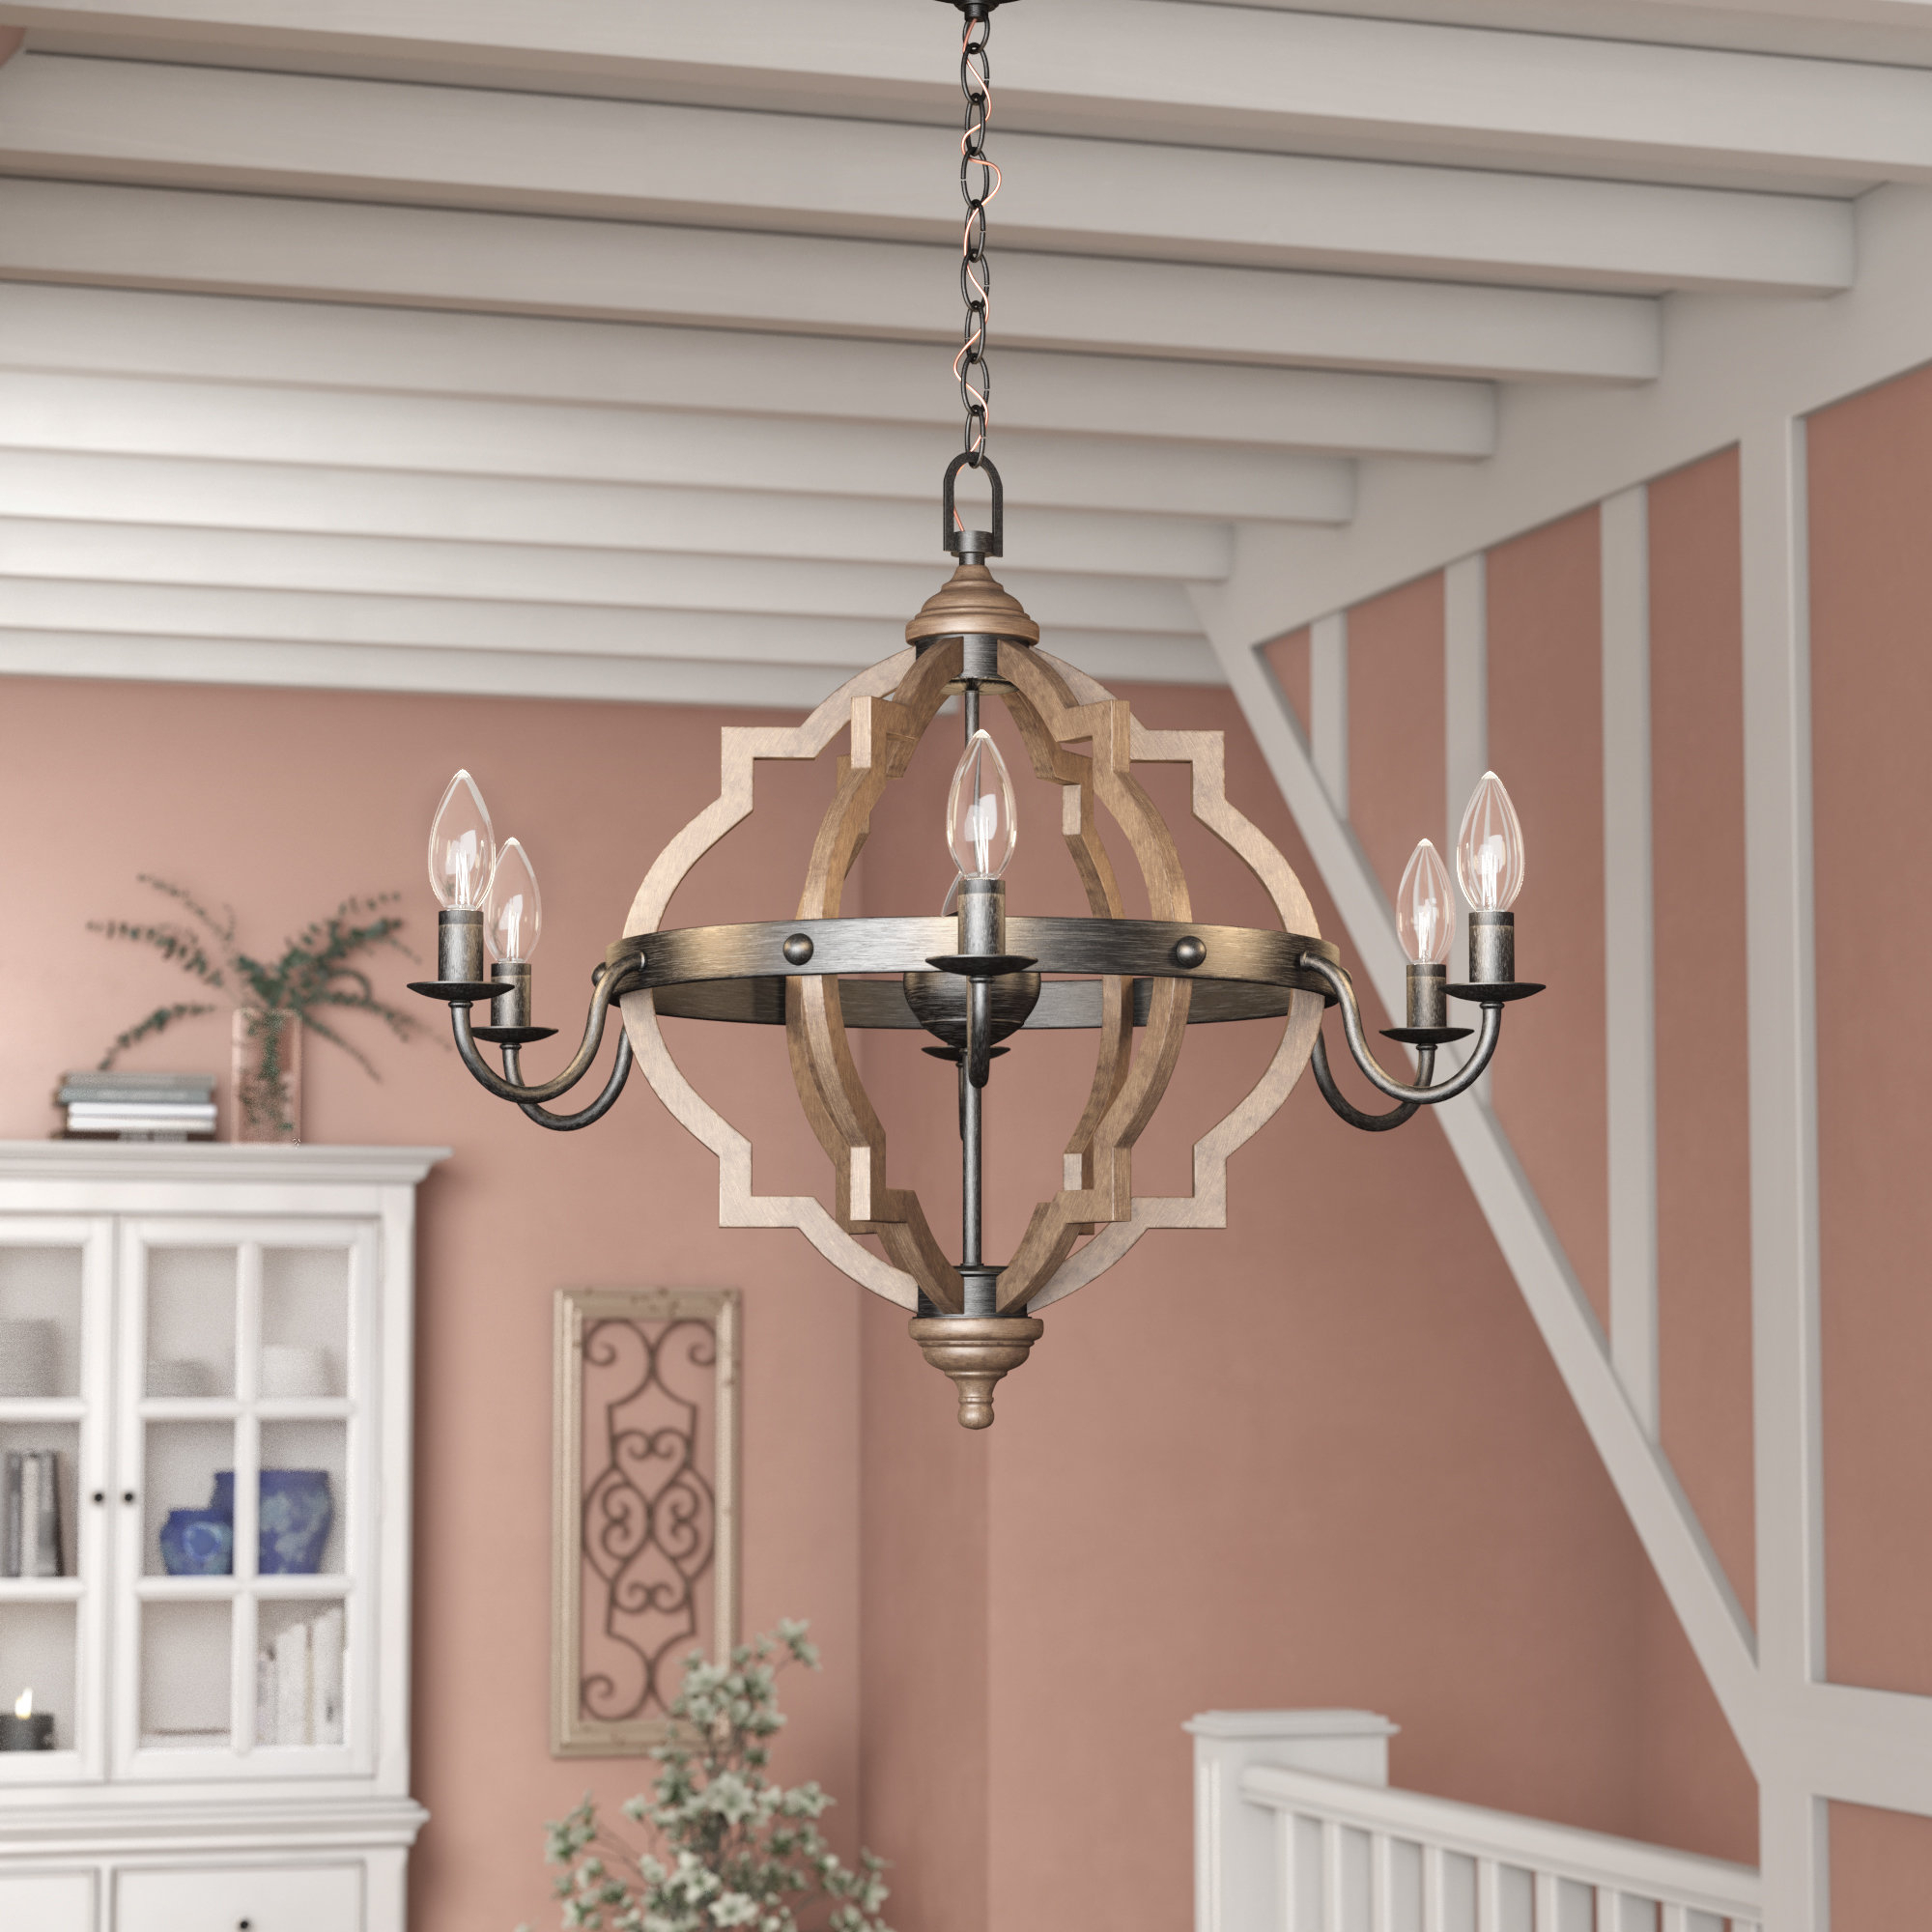 Preferred Donna 6 Light Candle Style Chandelier Throughout Bennington 6 Light Candle Style Chandeliers (View 15 of 20)